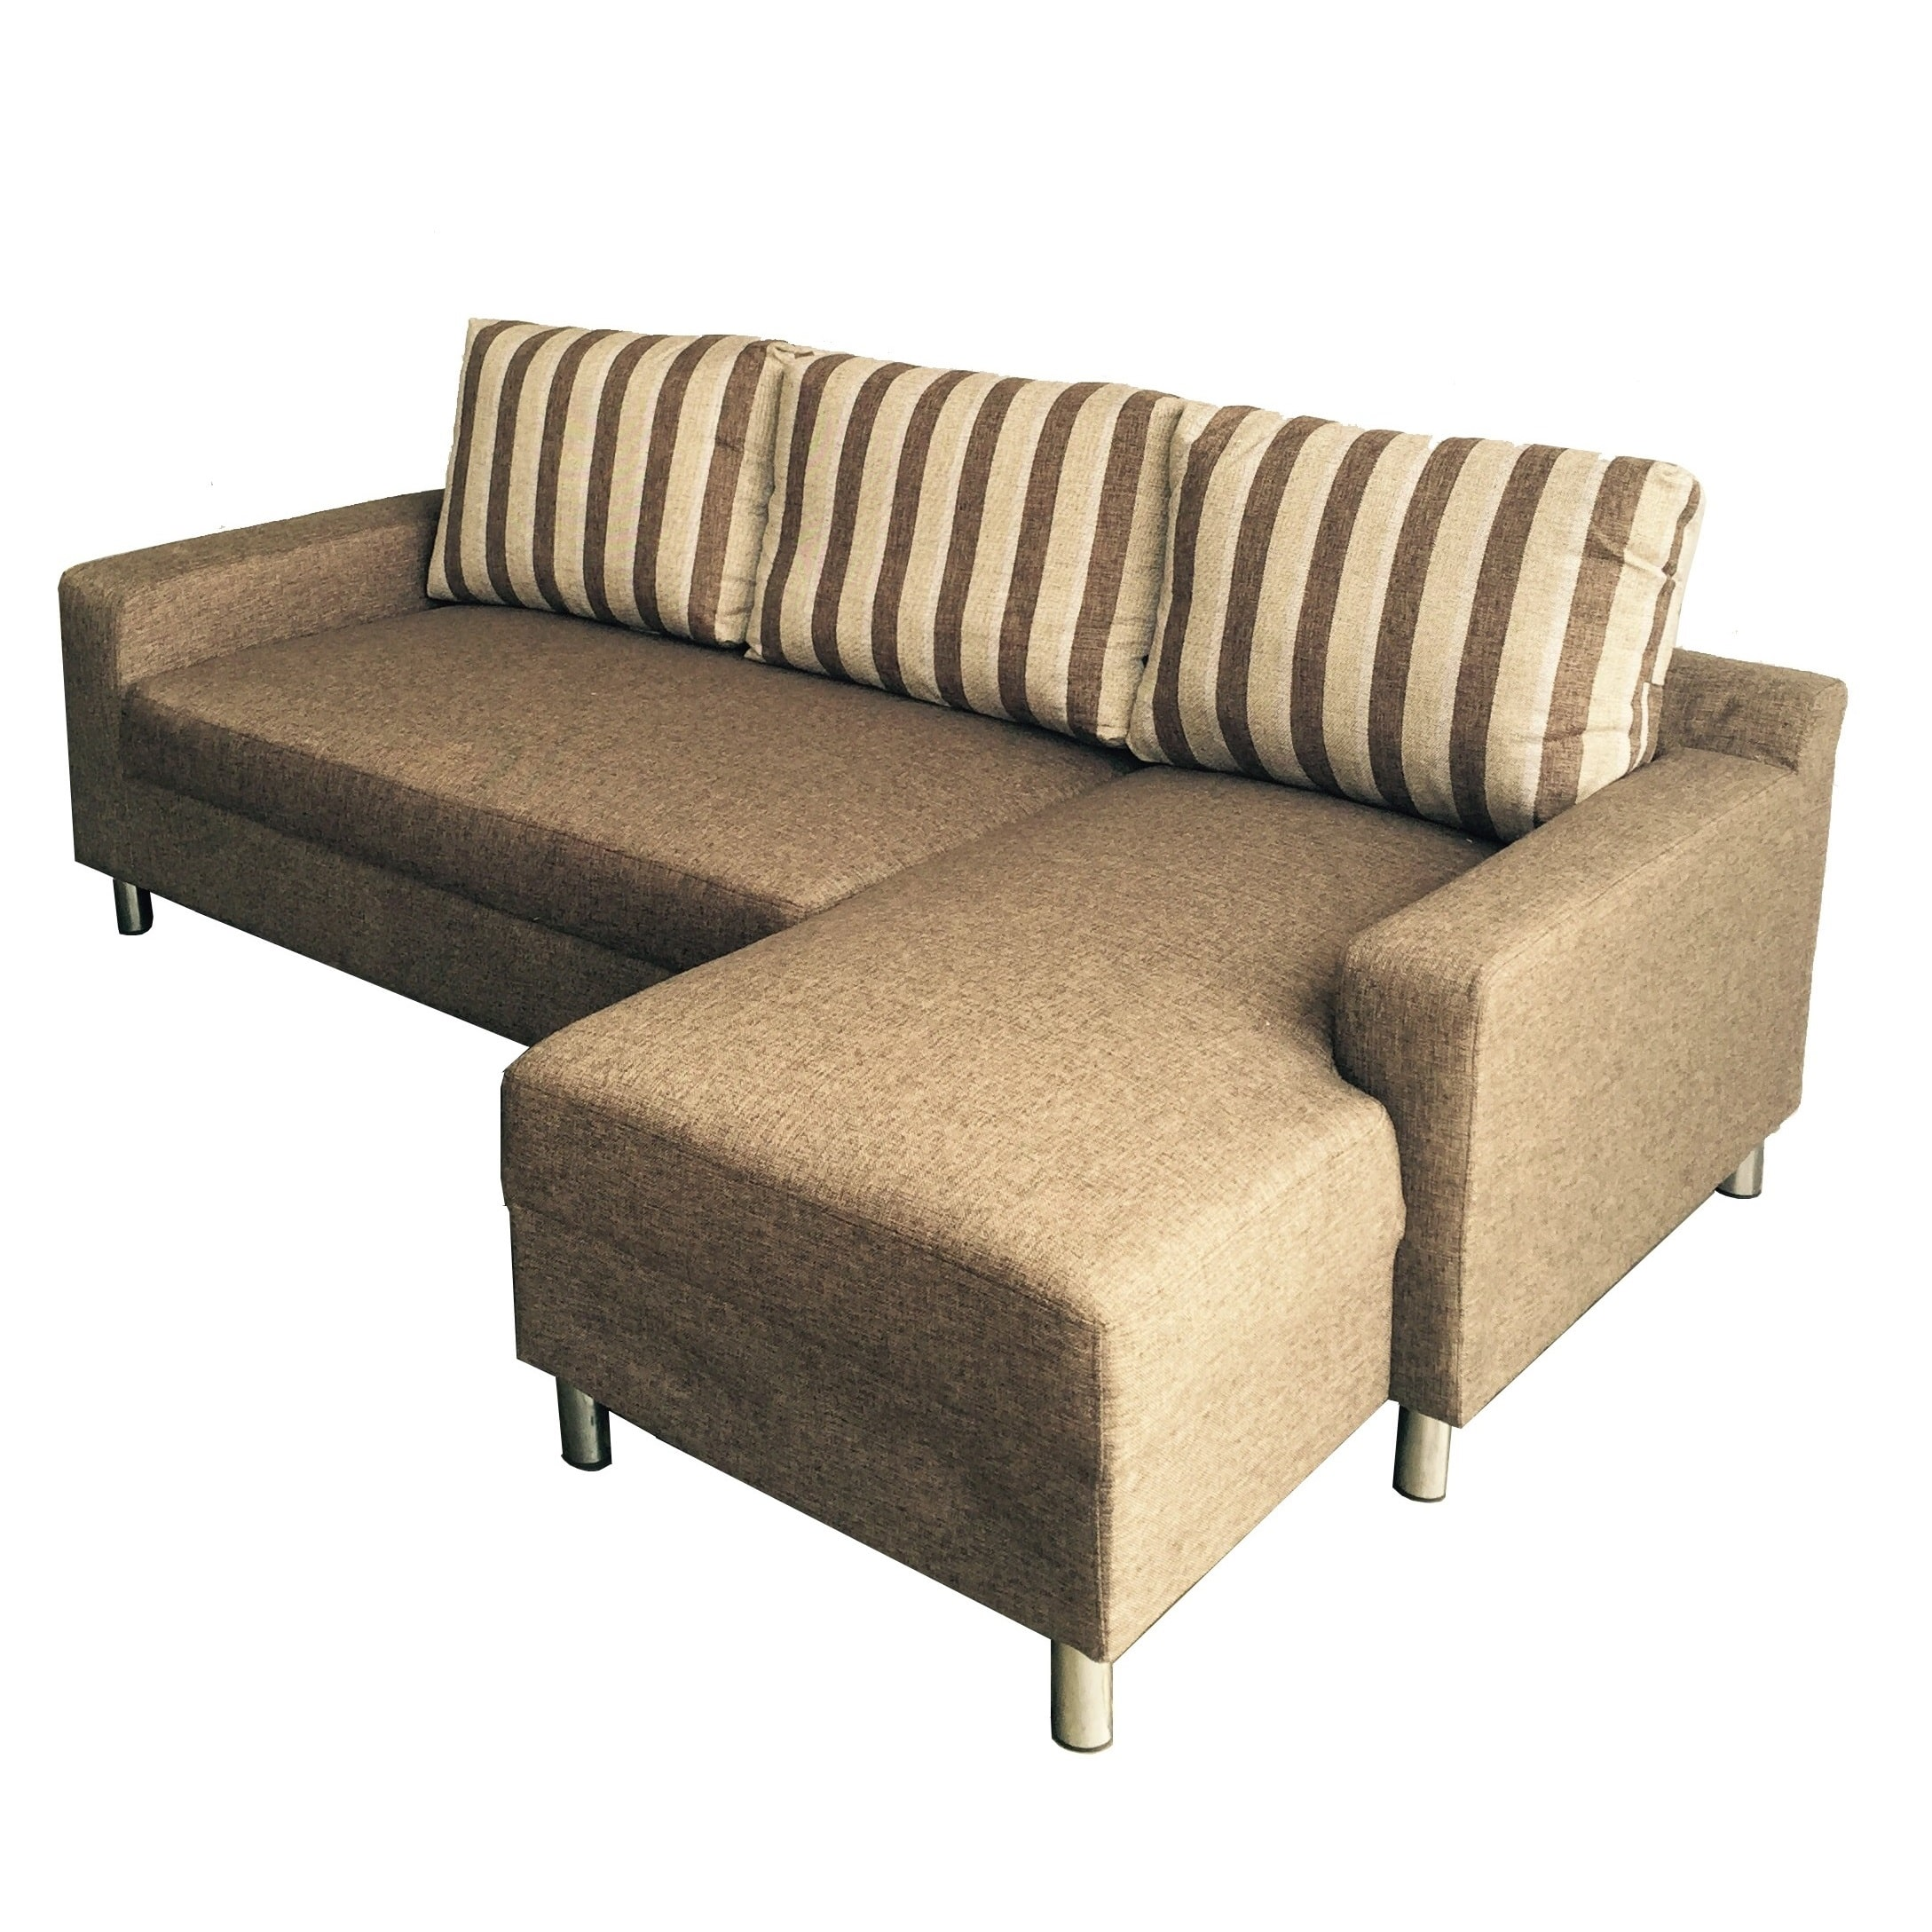 convertible sectional sofa bed. Interesting Sectional Kachy Modern Fabric Upholstered Right Facing Convertible Sectional Sofa  Sleeper Brown S0066 Intended Bed